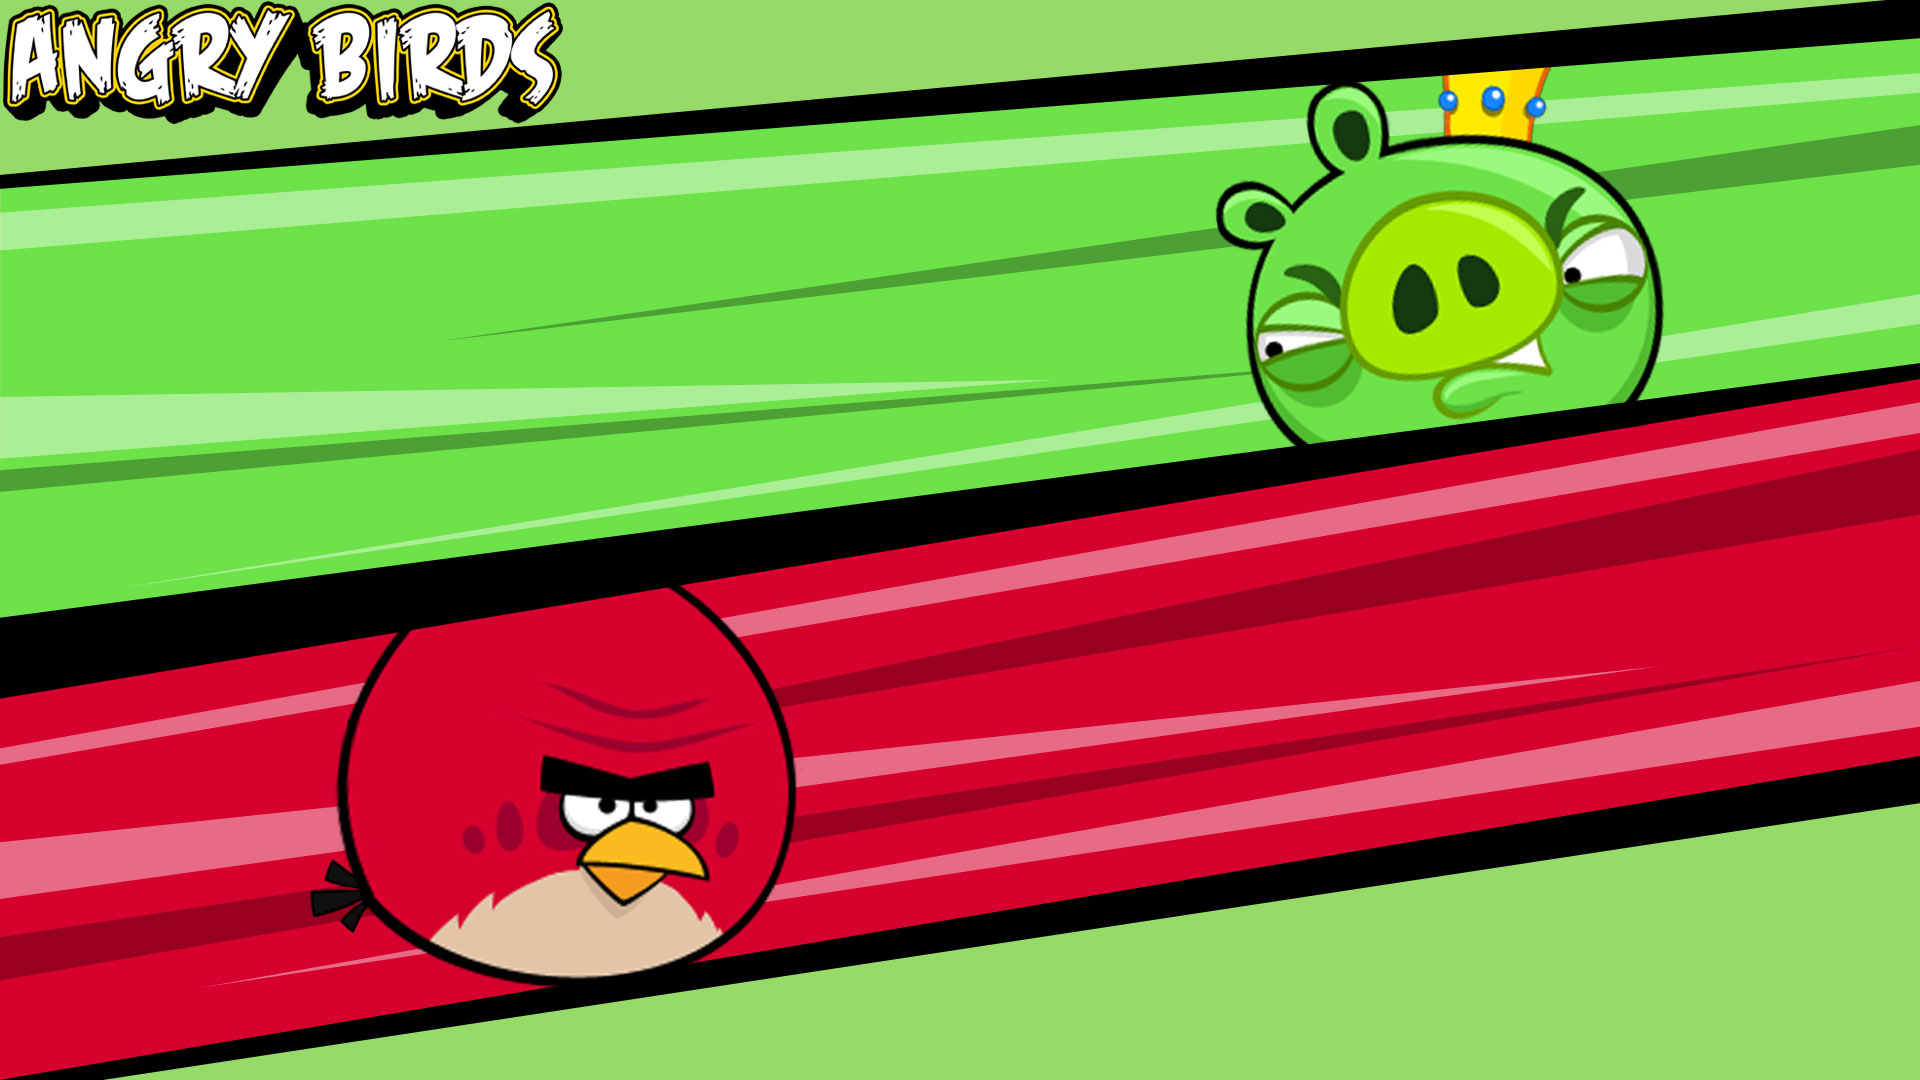 Big Brother Bird Vs King Pig - Angry Birds Red Pig , HD Wallpaper & Backgrounds